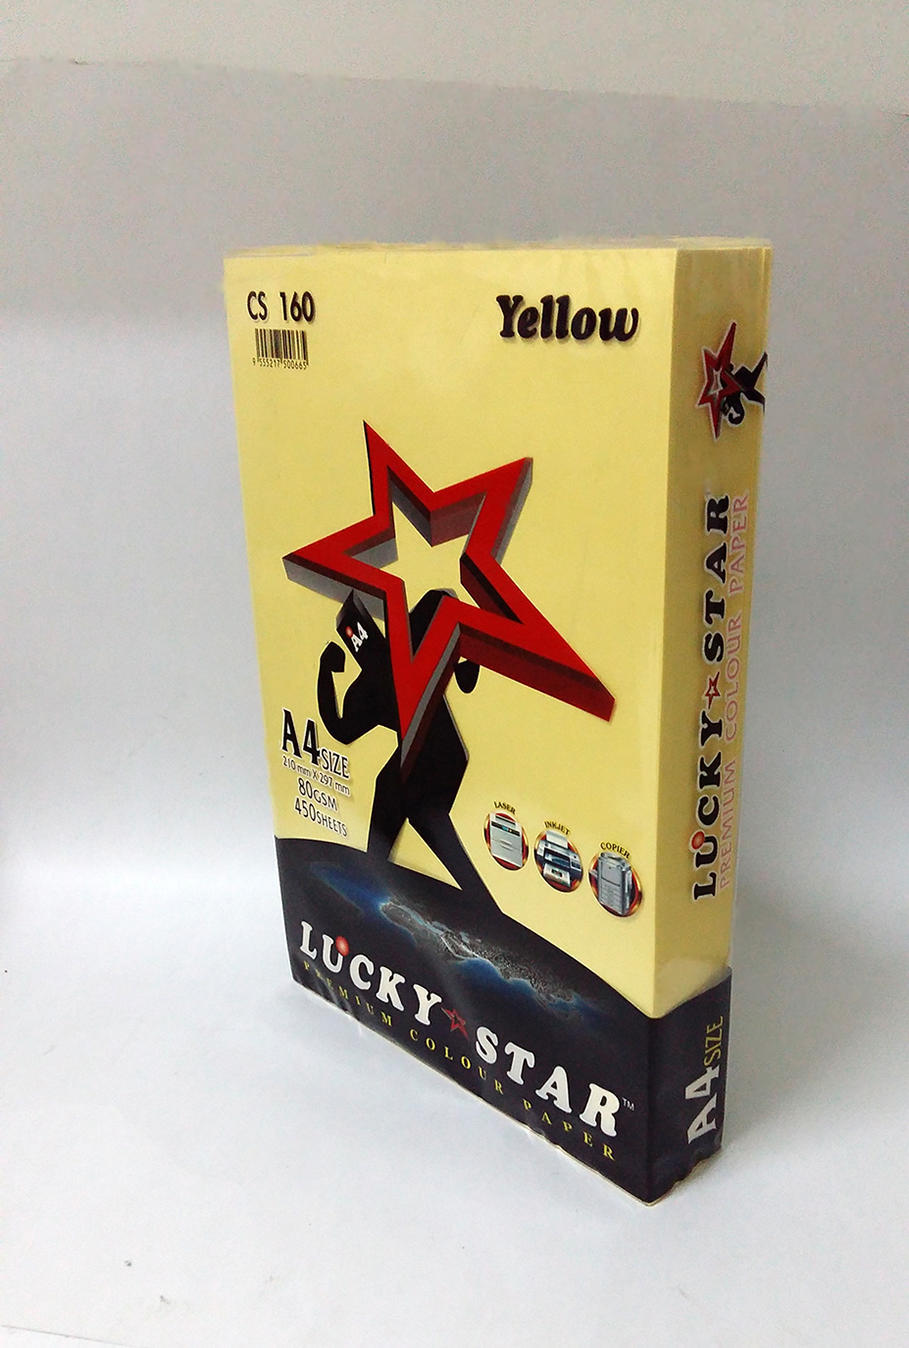 Lucky_Star_A4 Color Paper_Yellow_CS160.jpg